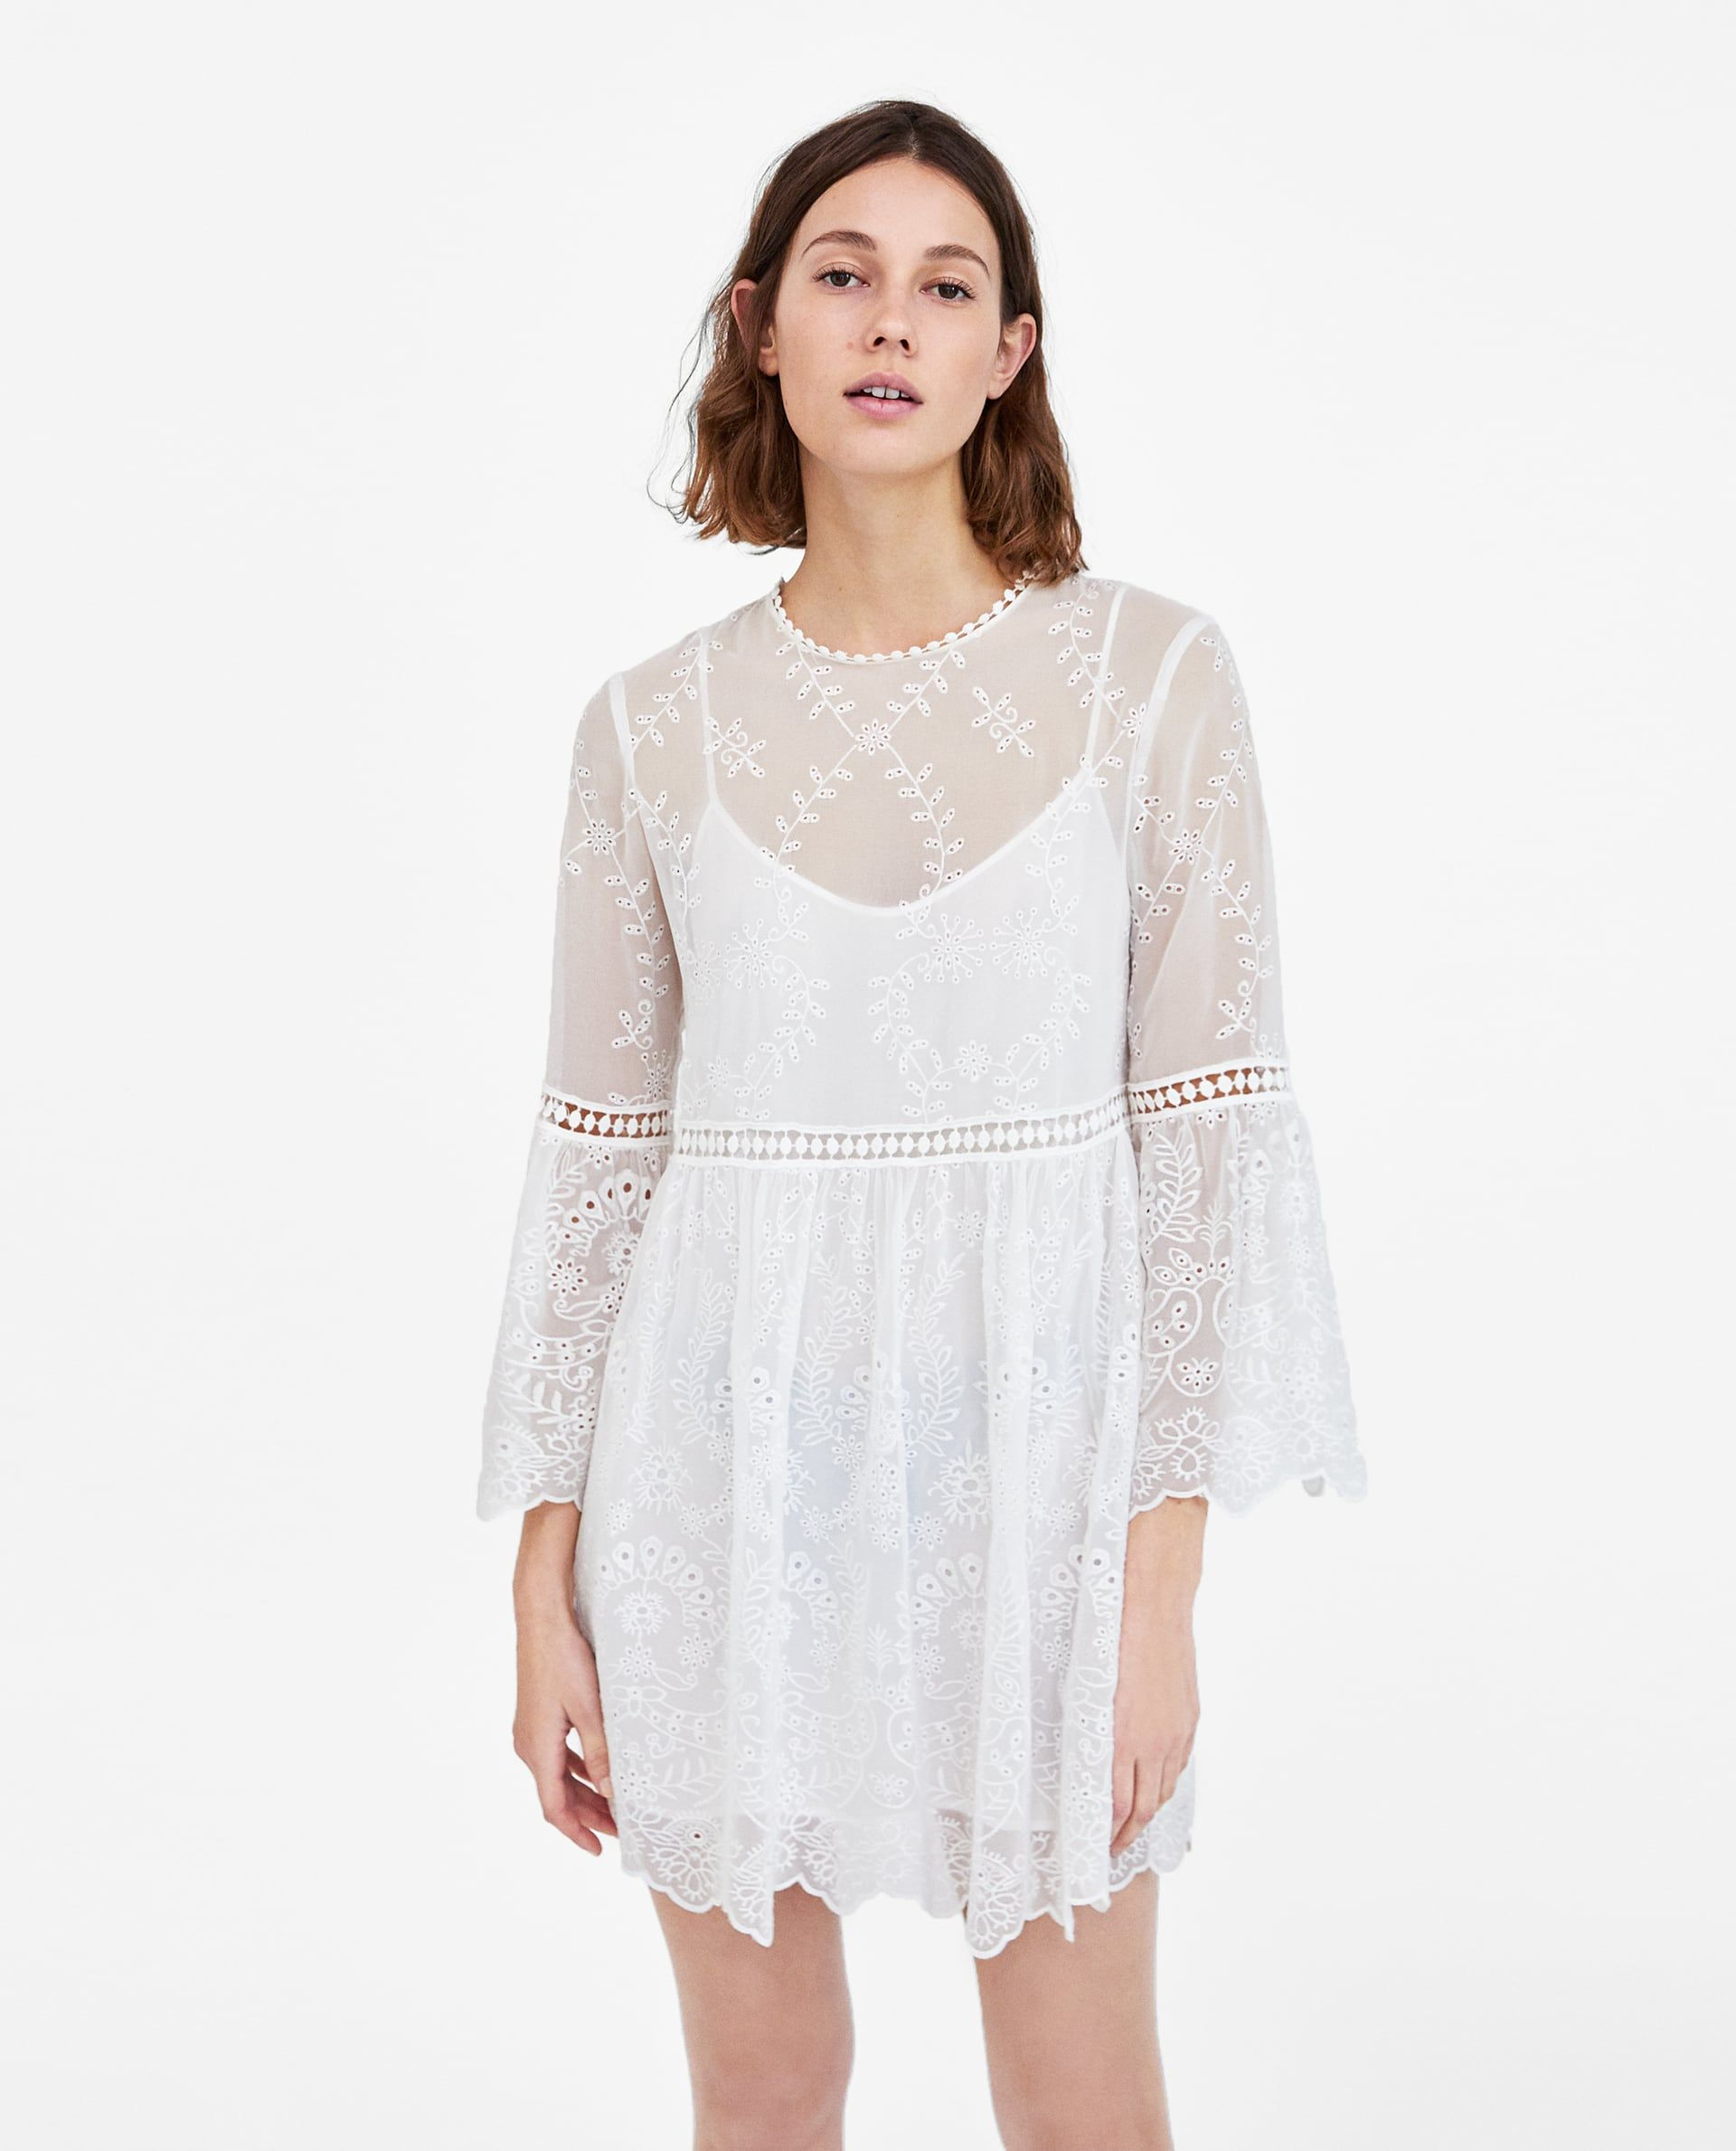 98041dd1 EMBROIDERED DRESS WITH PERFORATIONS DETAILS 3,990 RSD COLOR: Off-white  4786/078